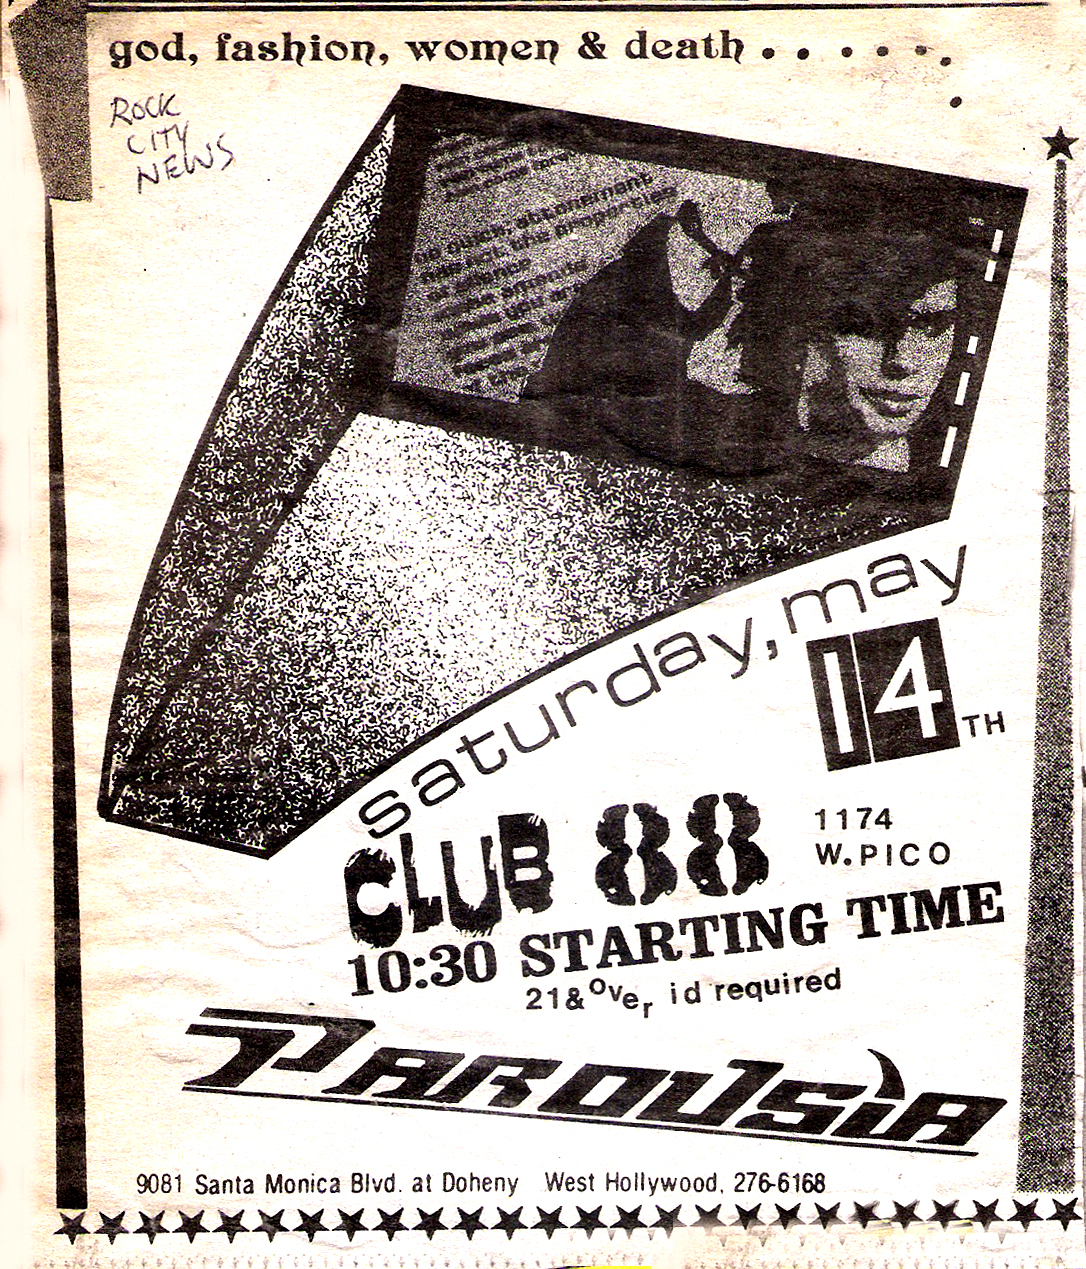 Rock City News - Parousia debut at Club 88, May 14th, 1988